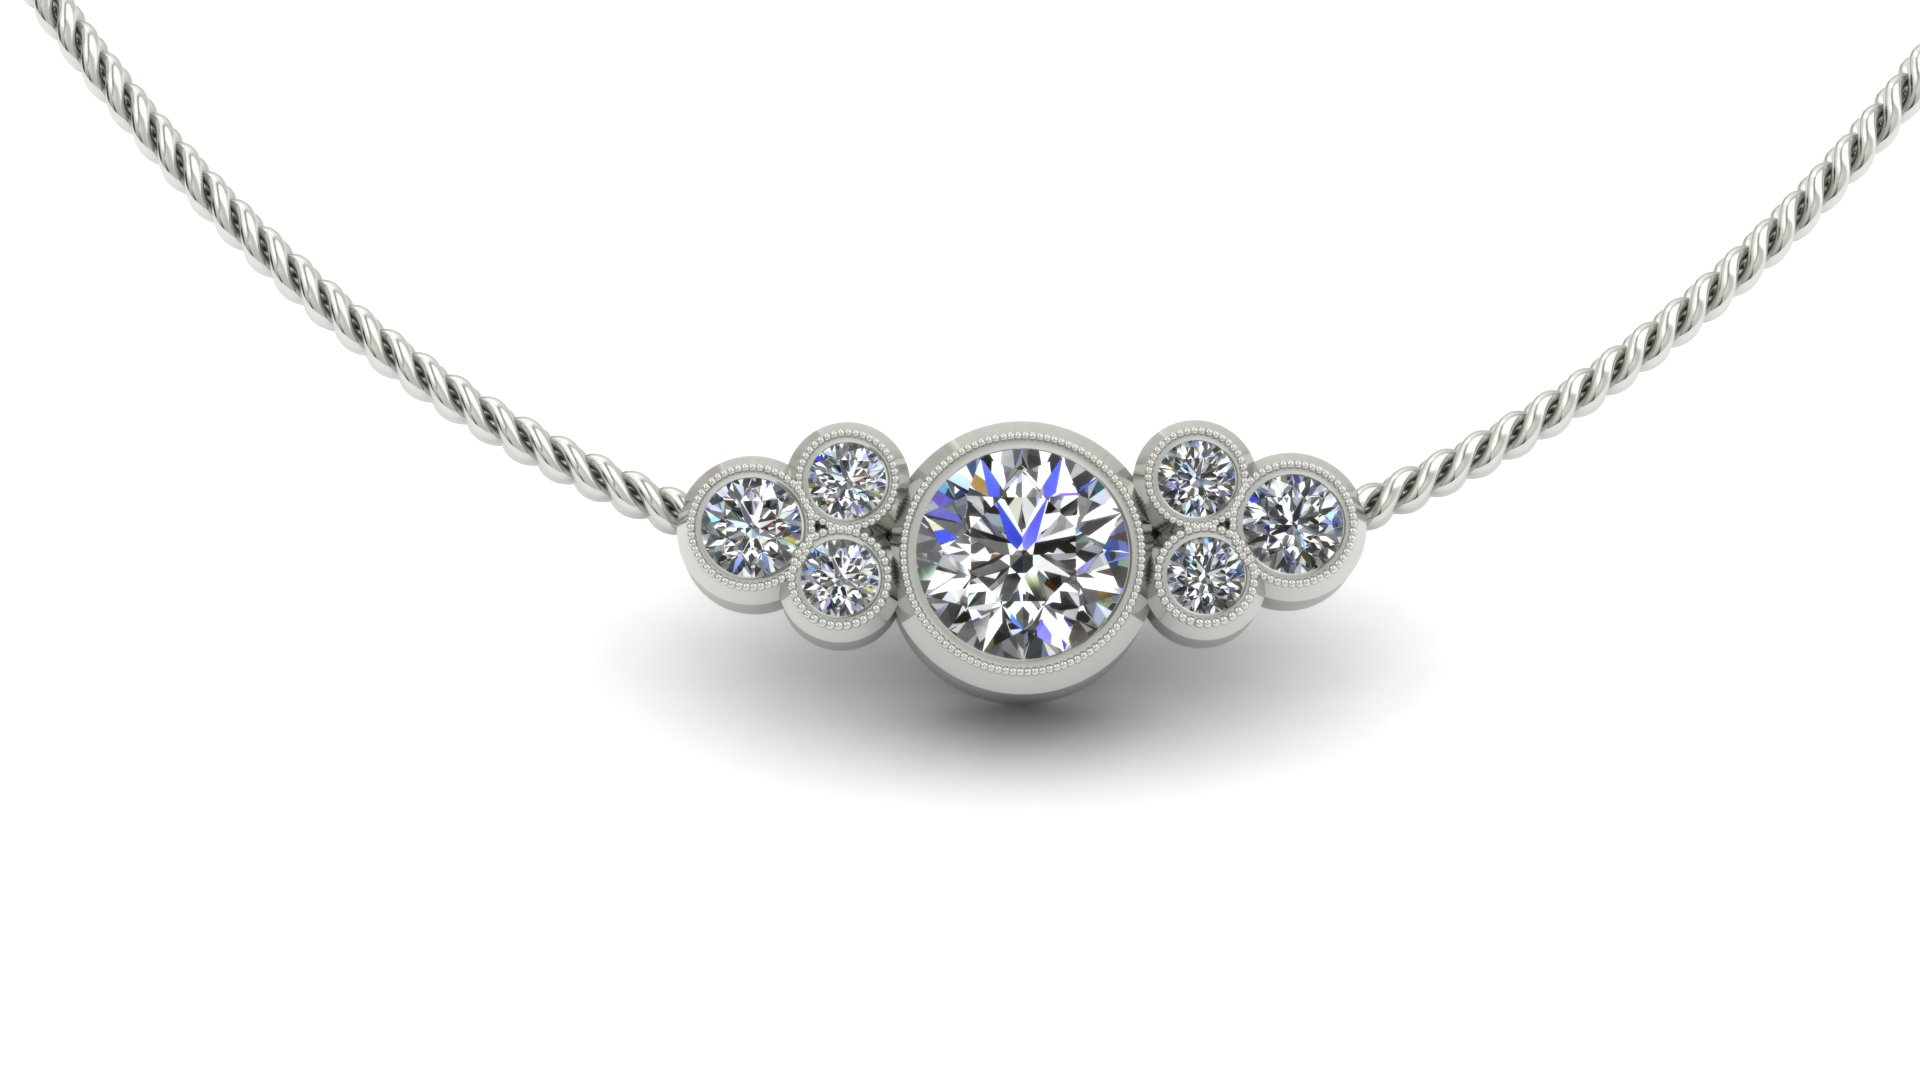 BEZEL BRILLIANT ROUND CUSTOM DIAMOND NECKLACE